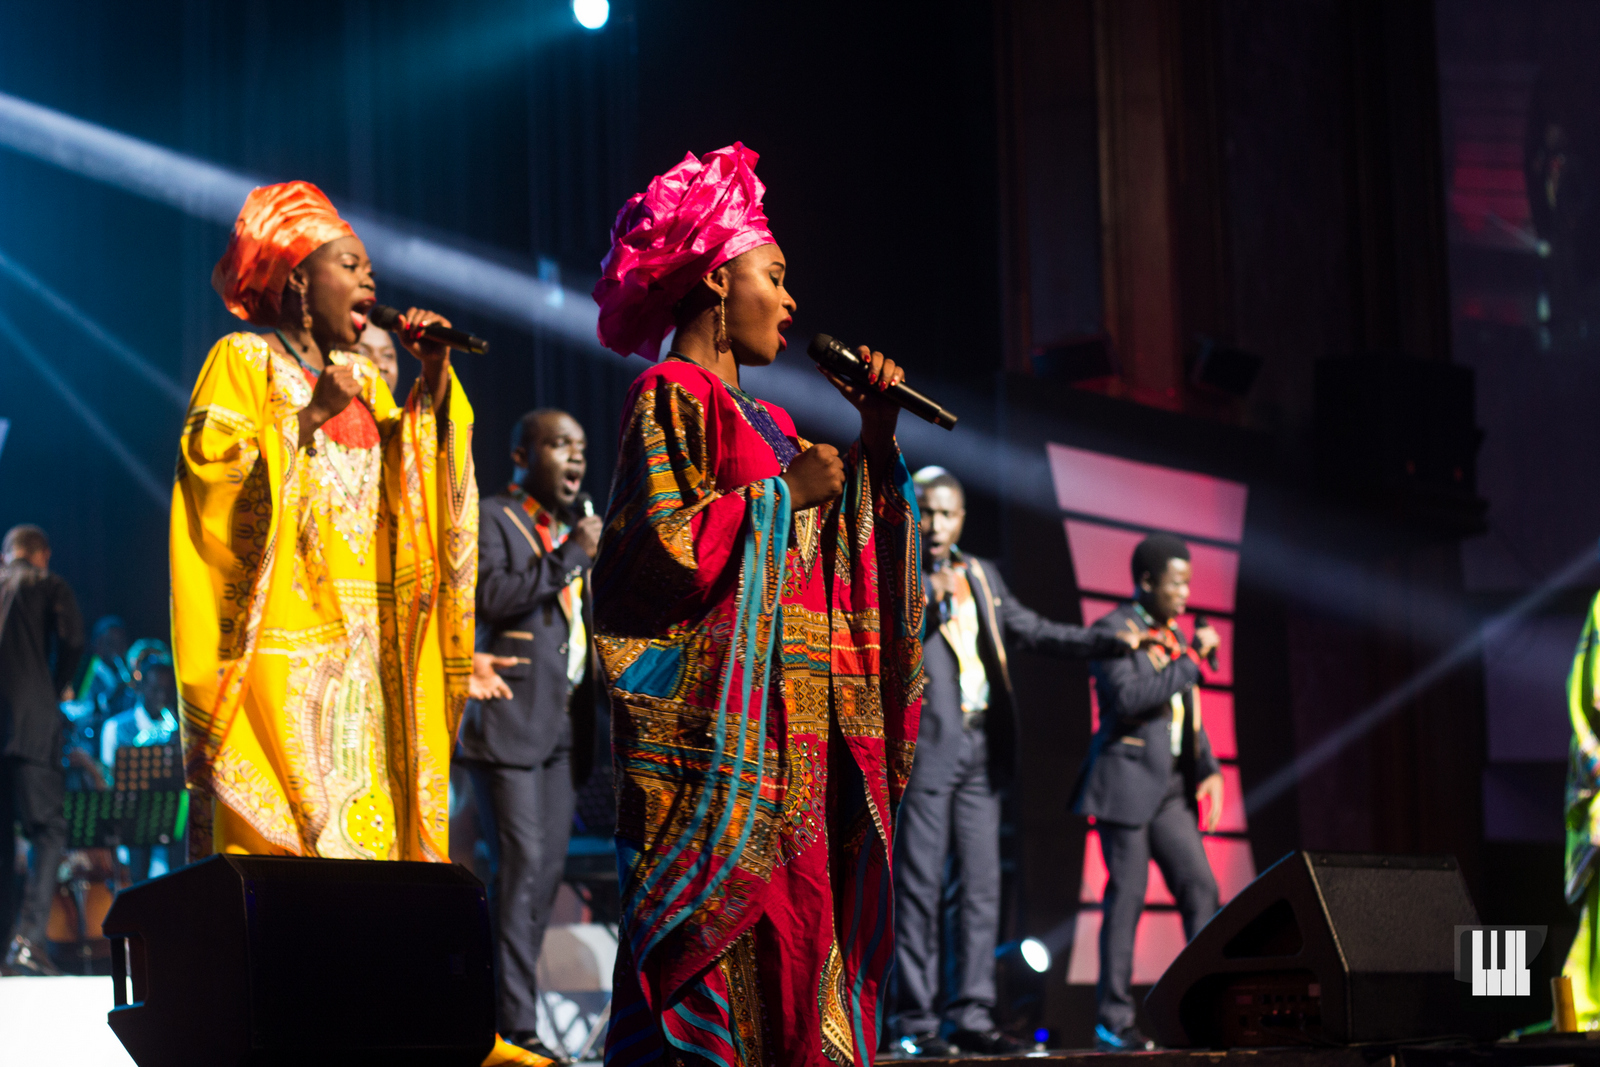 Accra Goes to the Opera Jesse Johnson experiences the best Ghanaian opera has to offer.